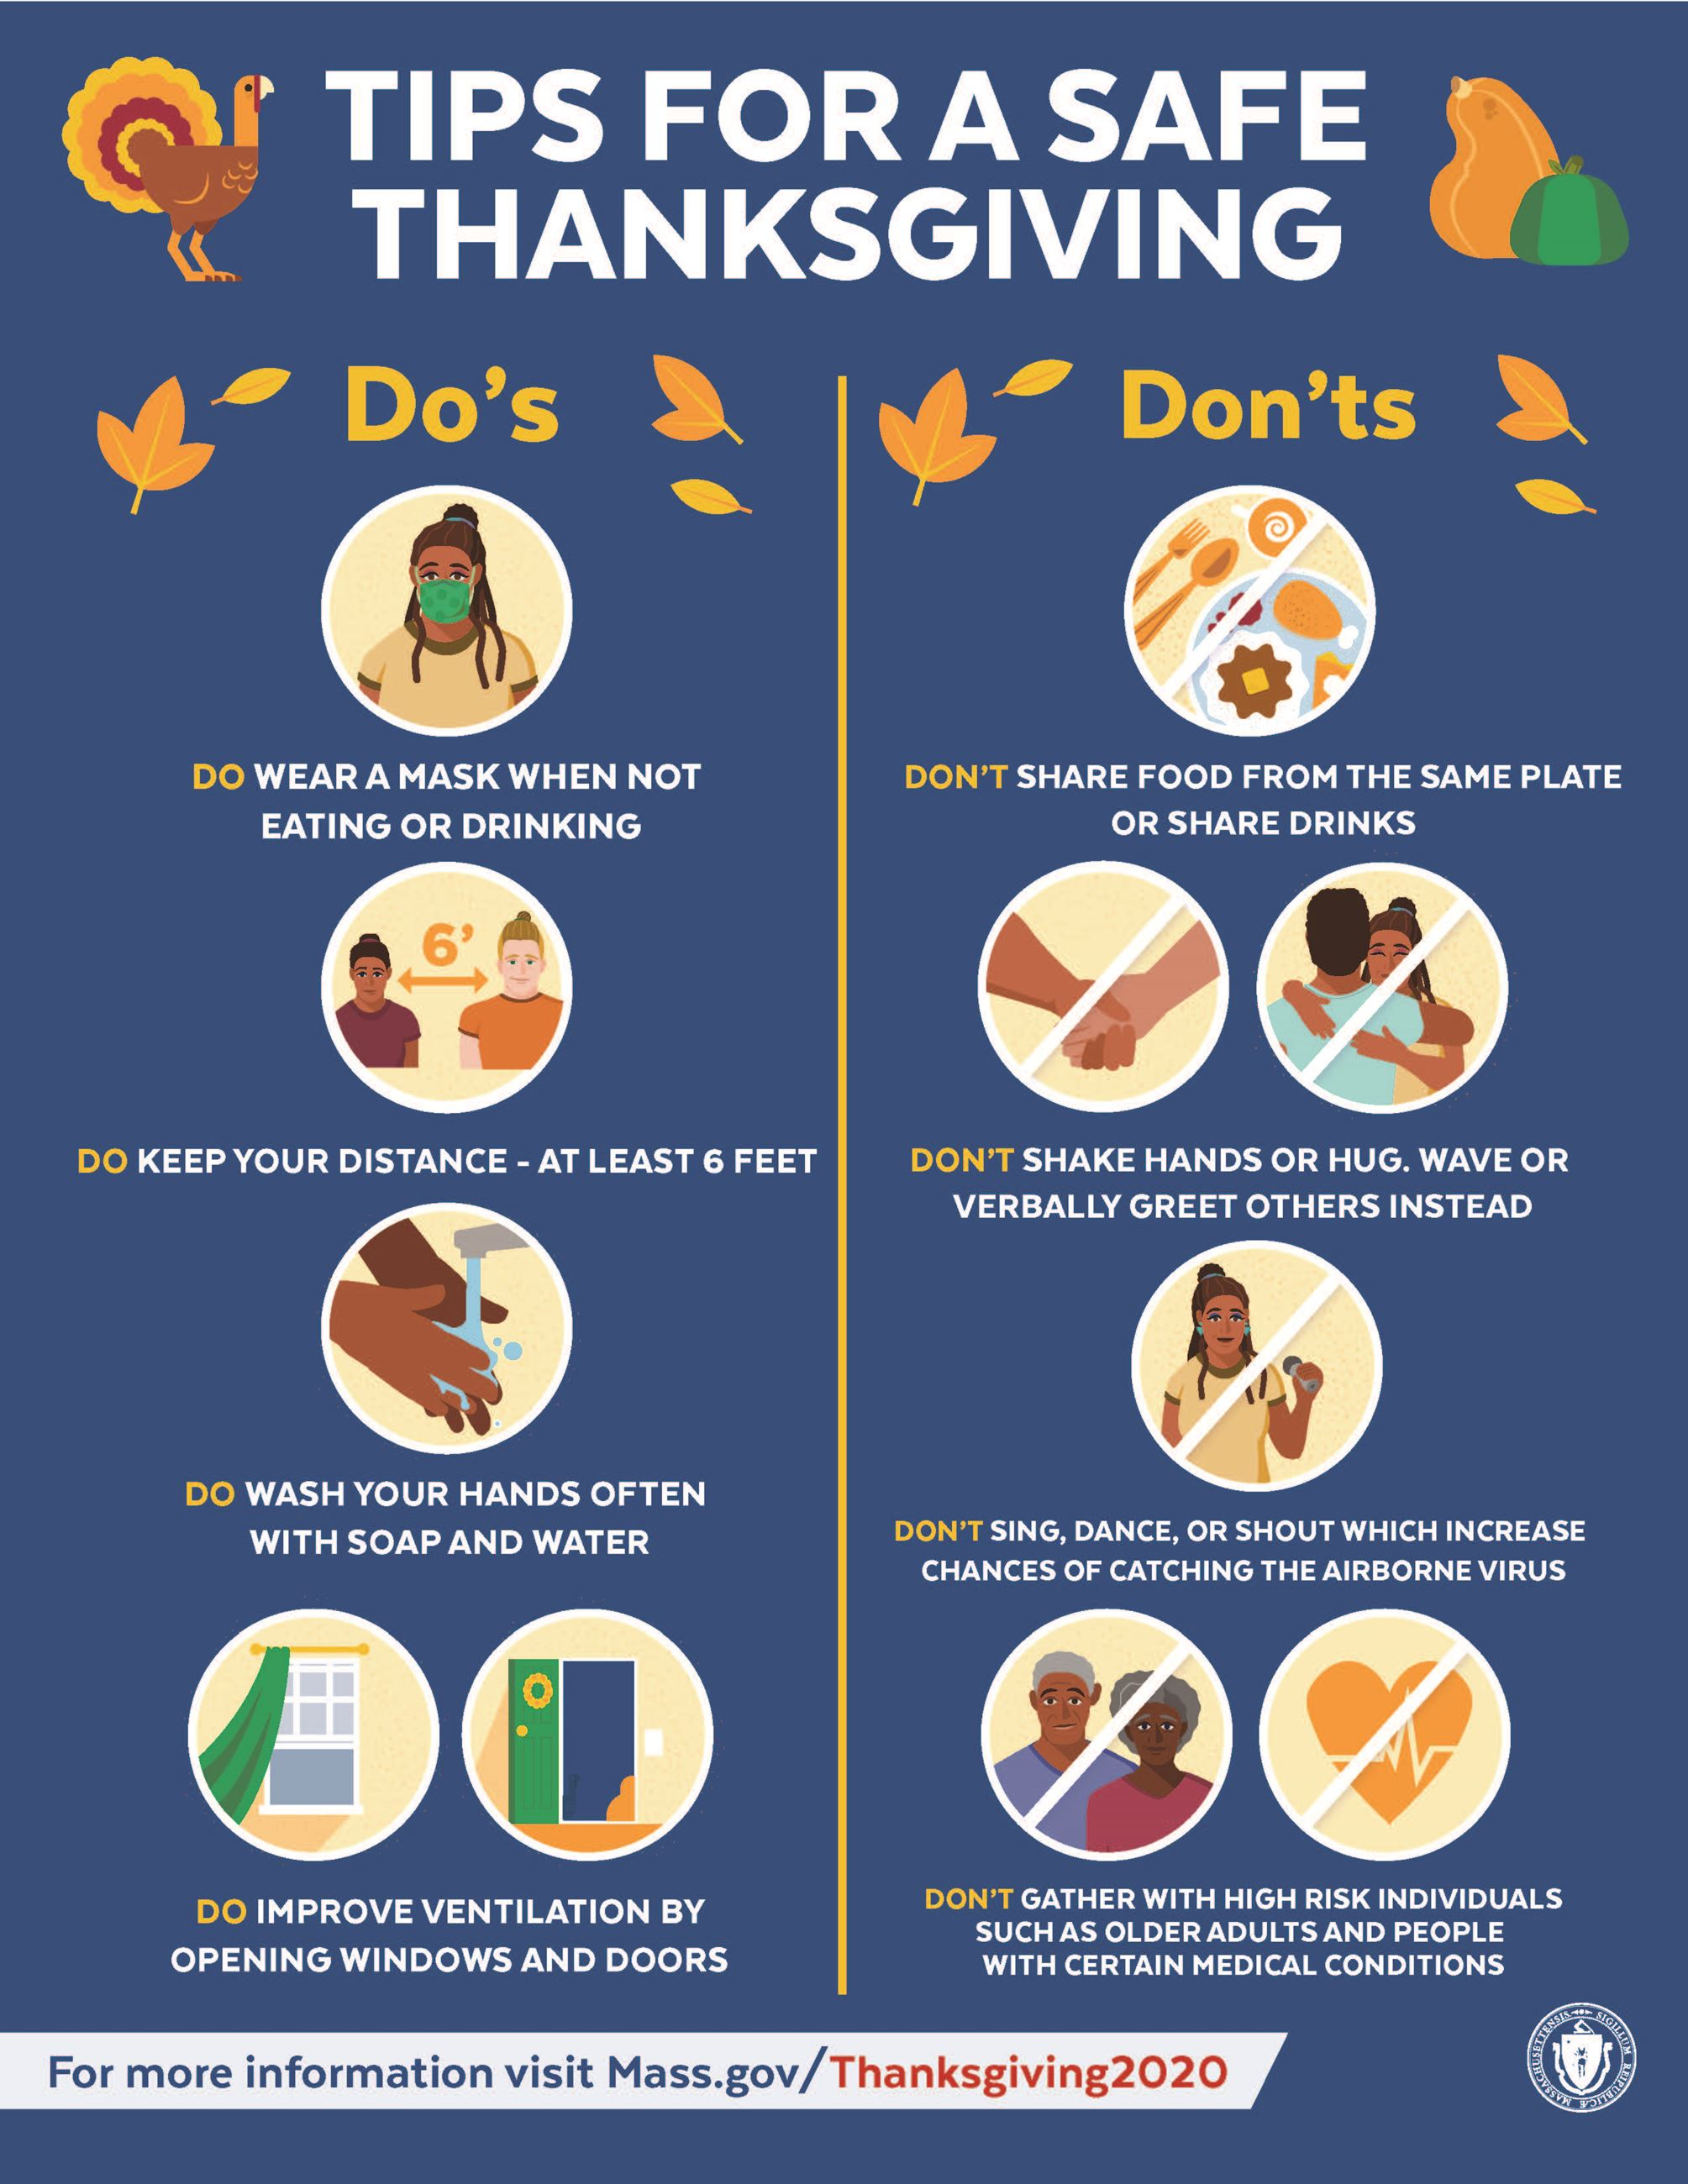 COVID-19 Thanksgiving flyer showing visuals of dos and don'ts to keep safe